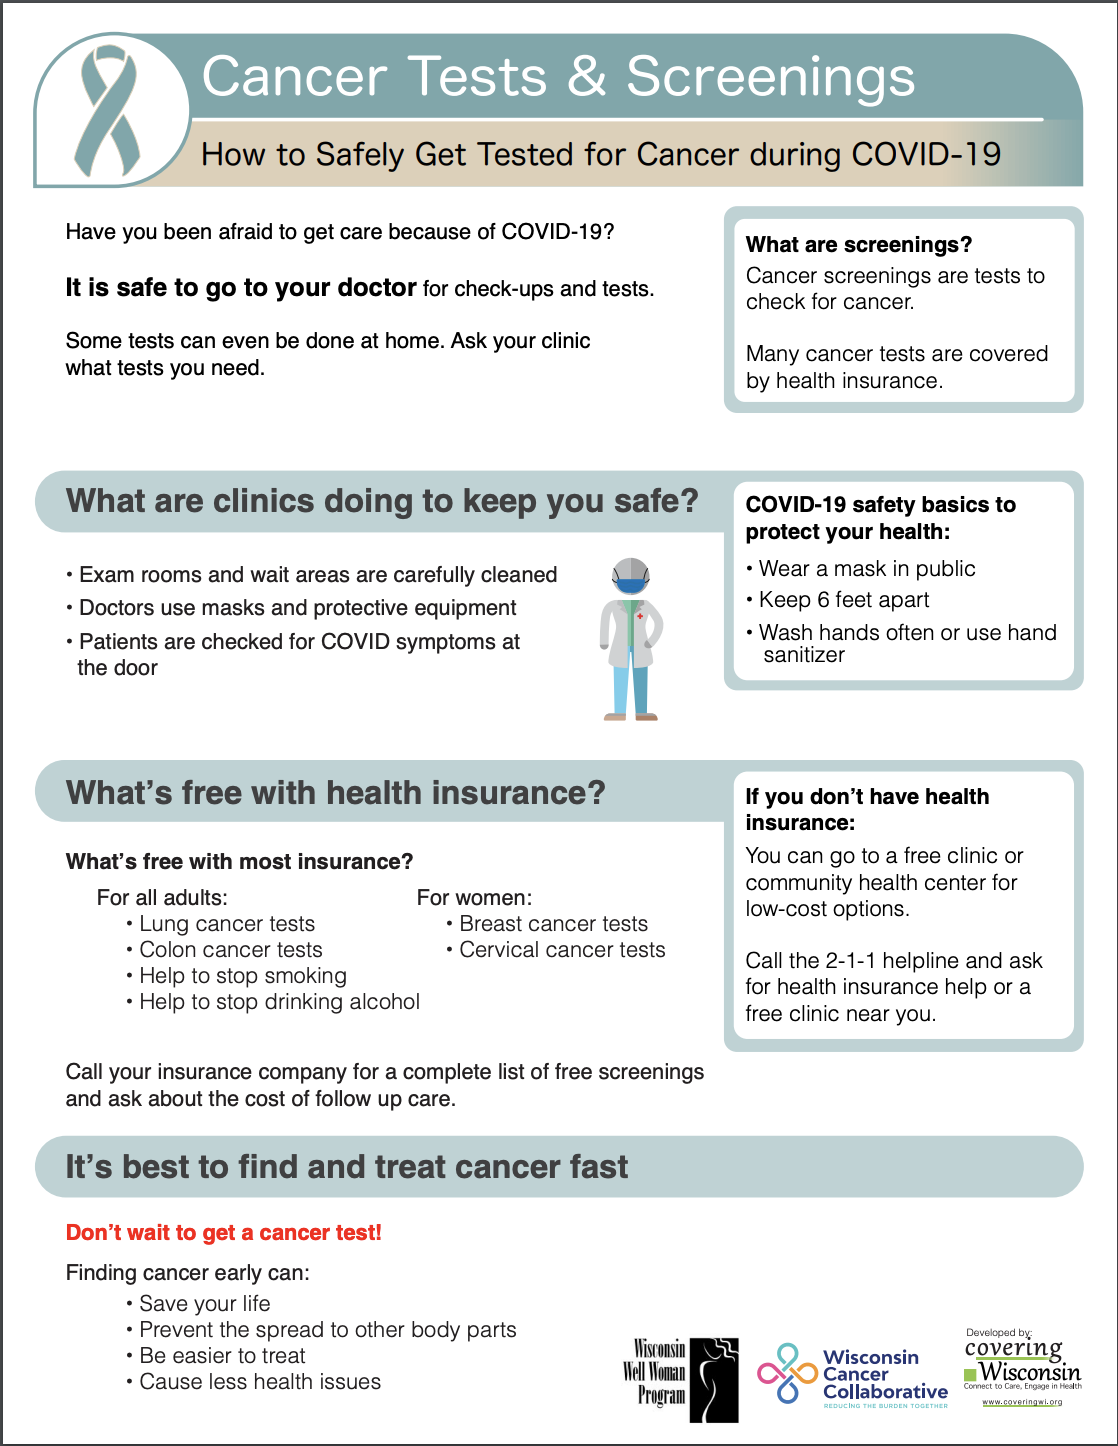 Cancer Tests and Screenings Cover